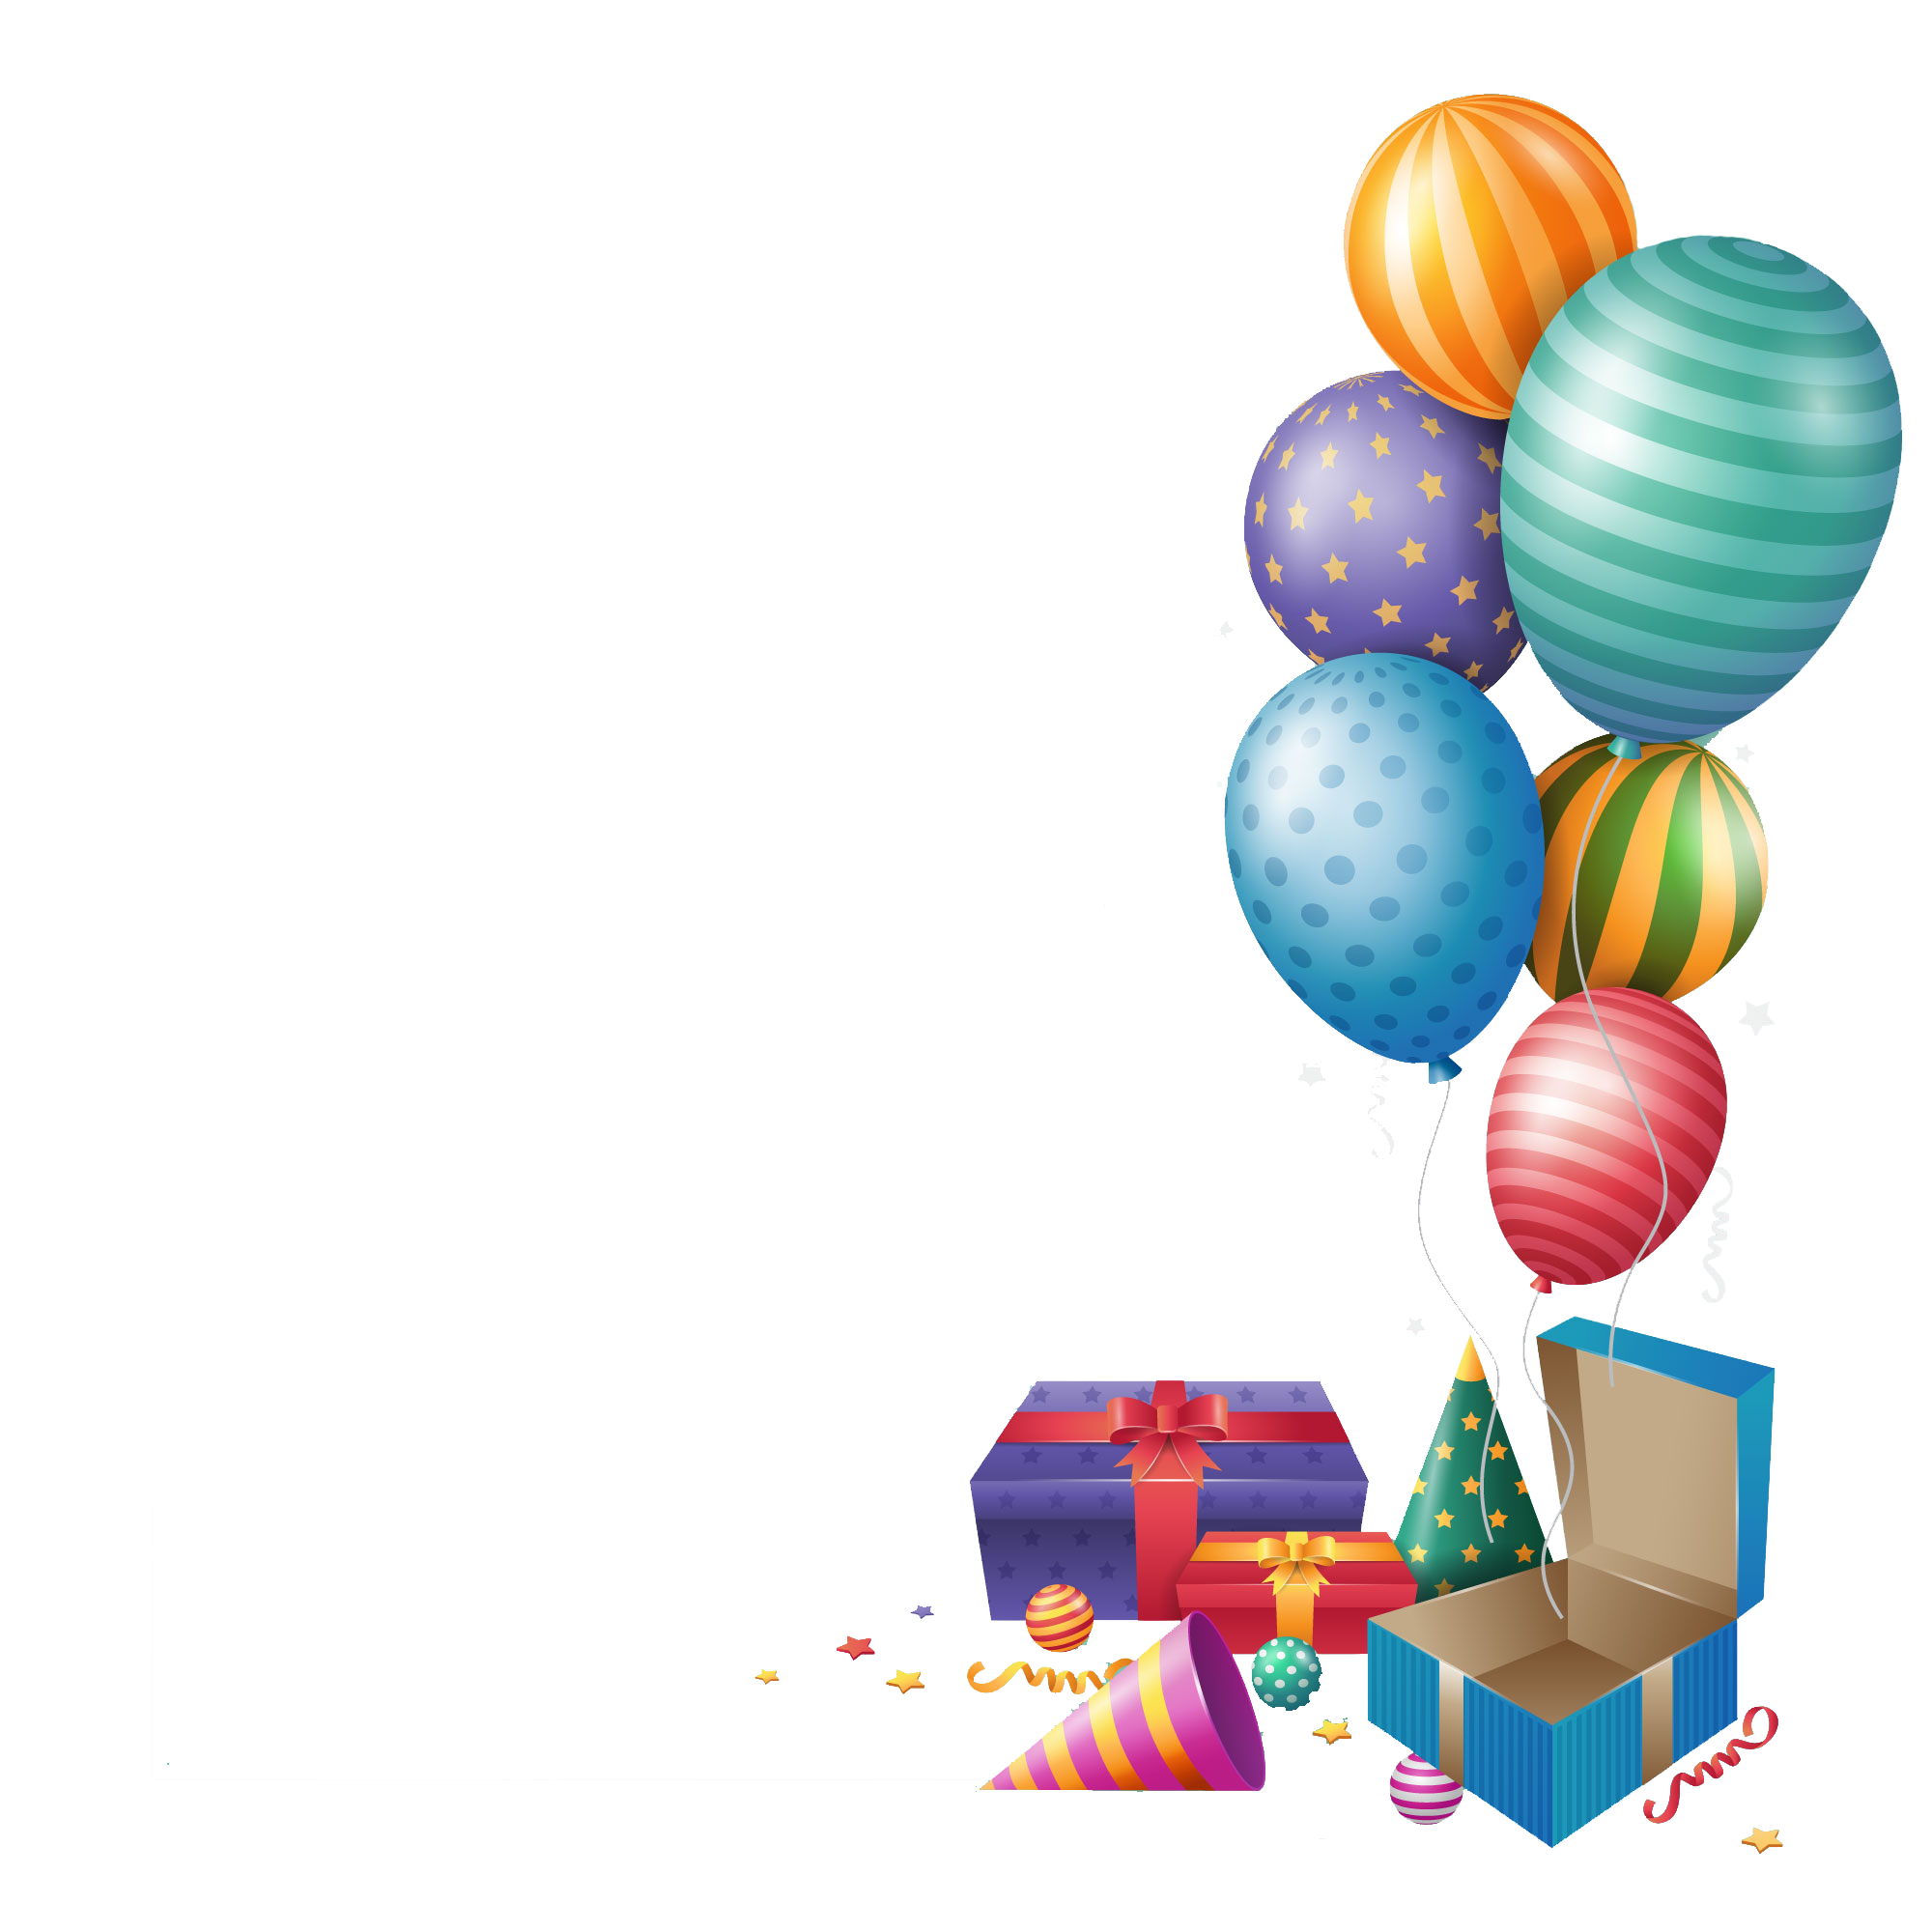 Gift clipart house png. Happy birthday balloons peoplepng